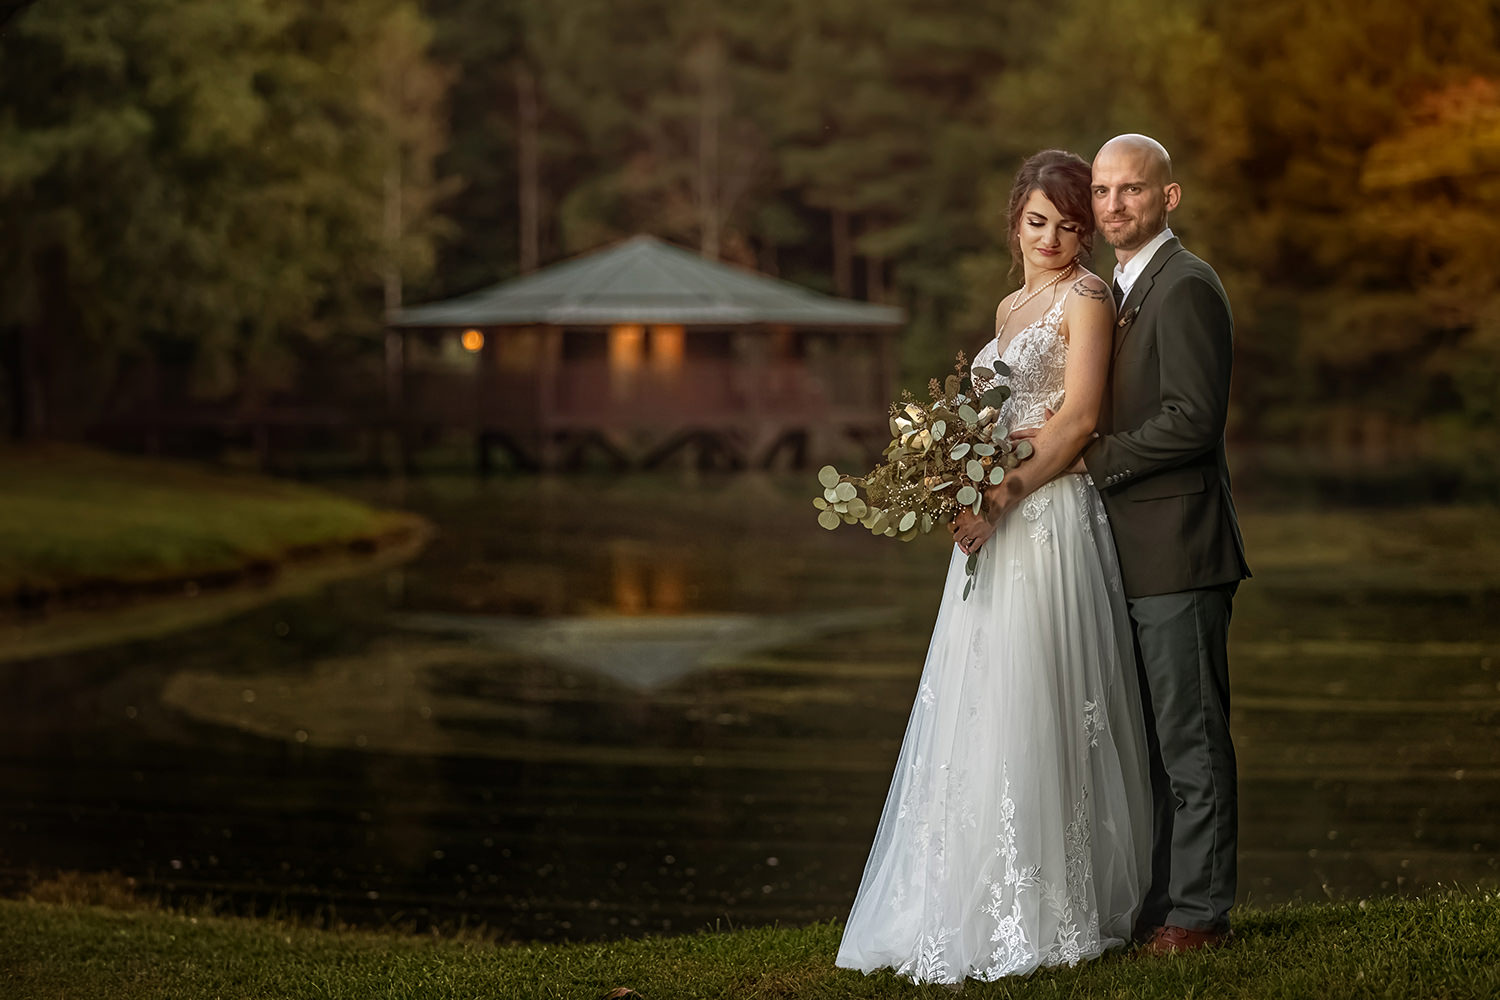 The Barn at Valhalla Wedding Bride and Groom by the Lake